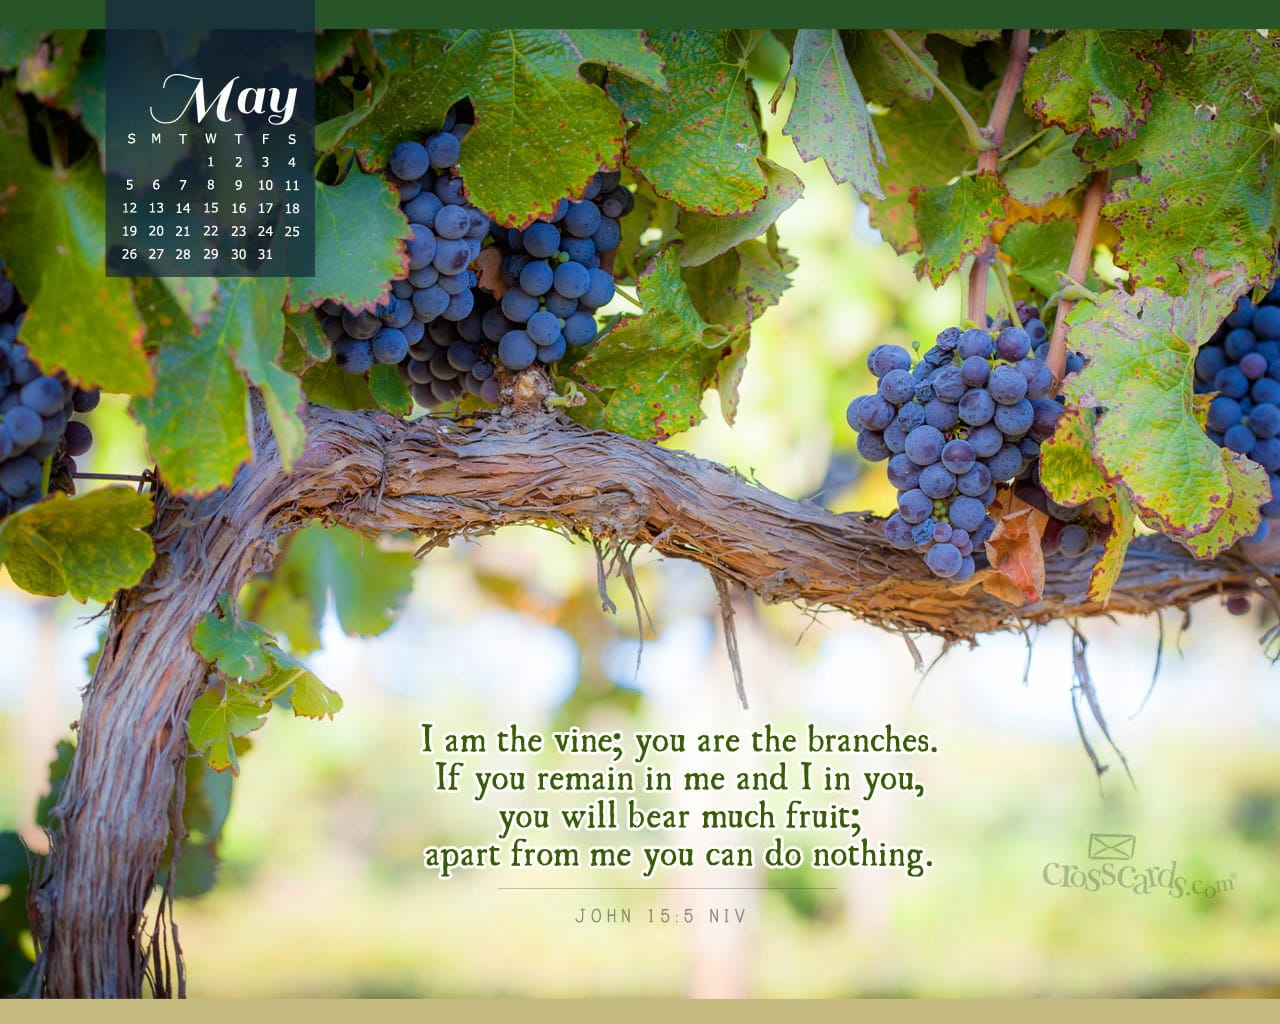 Fall Calendar Desktop Wallpaper May 2013 John 15 5 Niv Desktop Calendar Free May Wallpaper